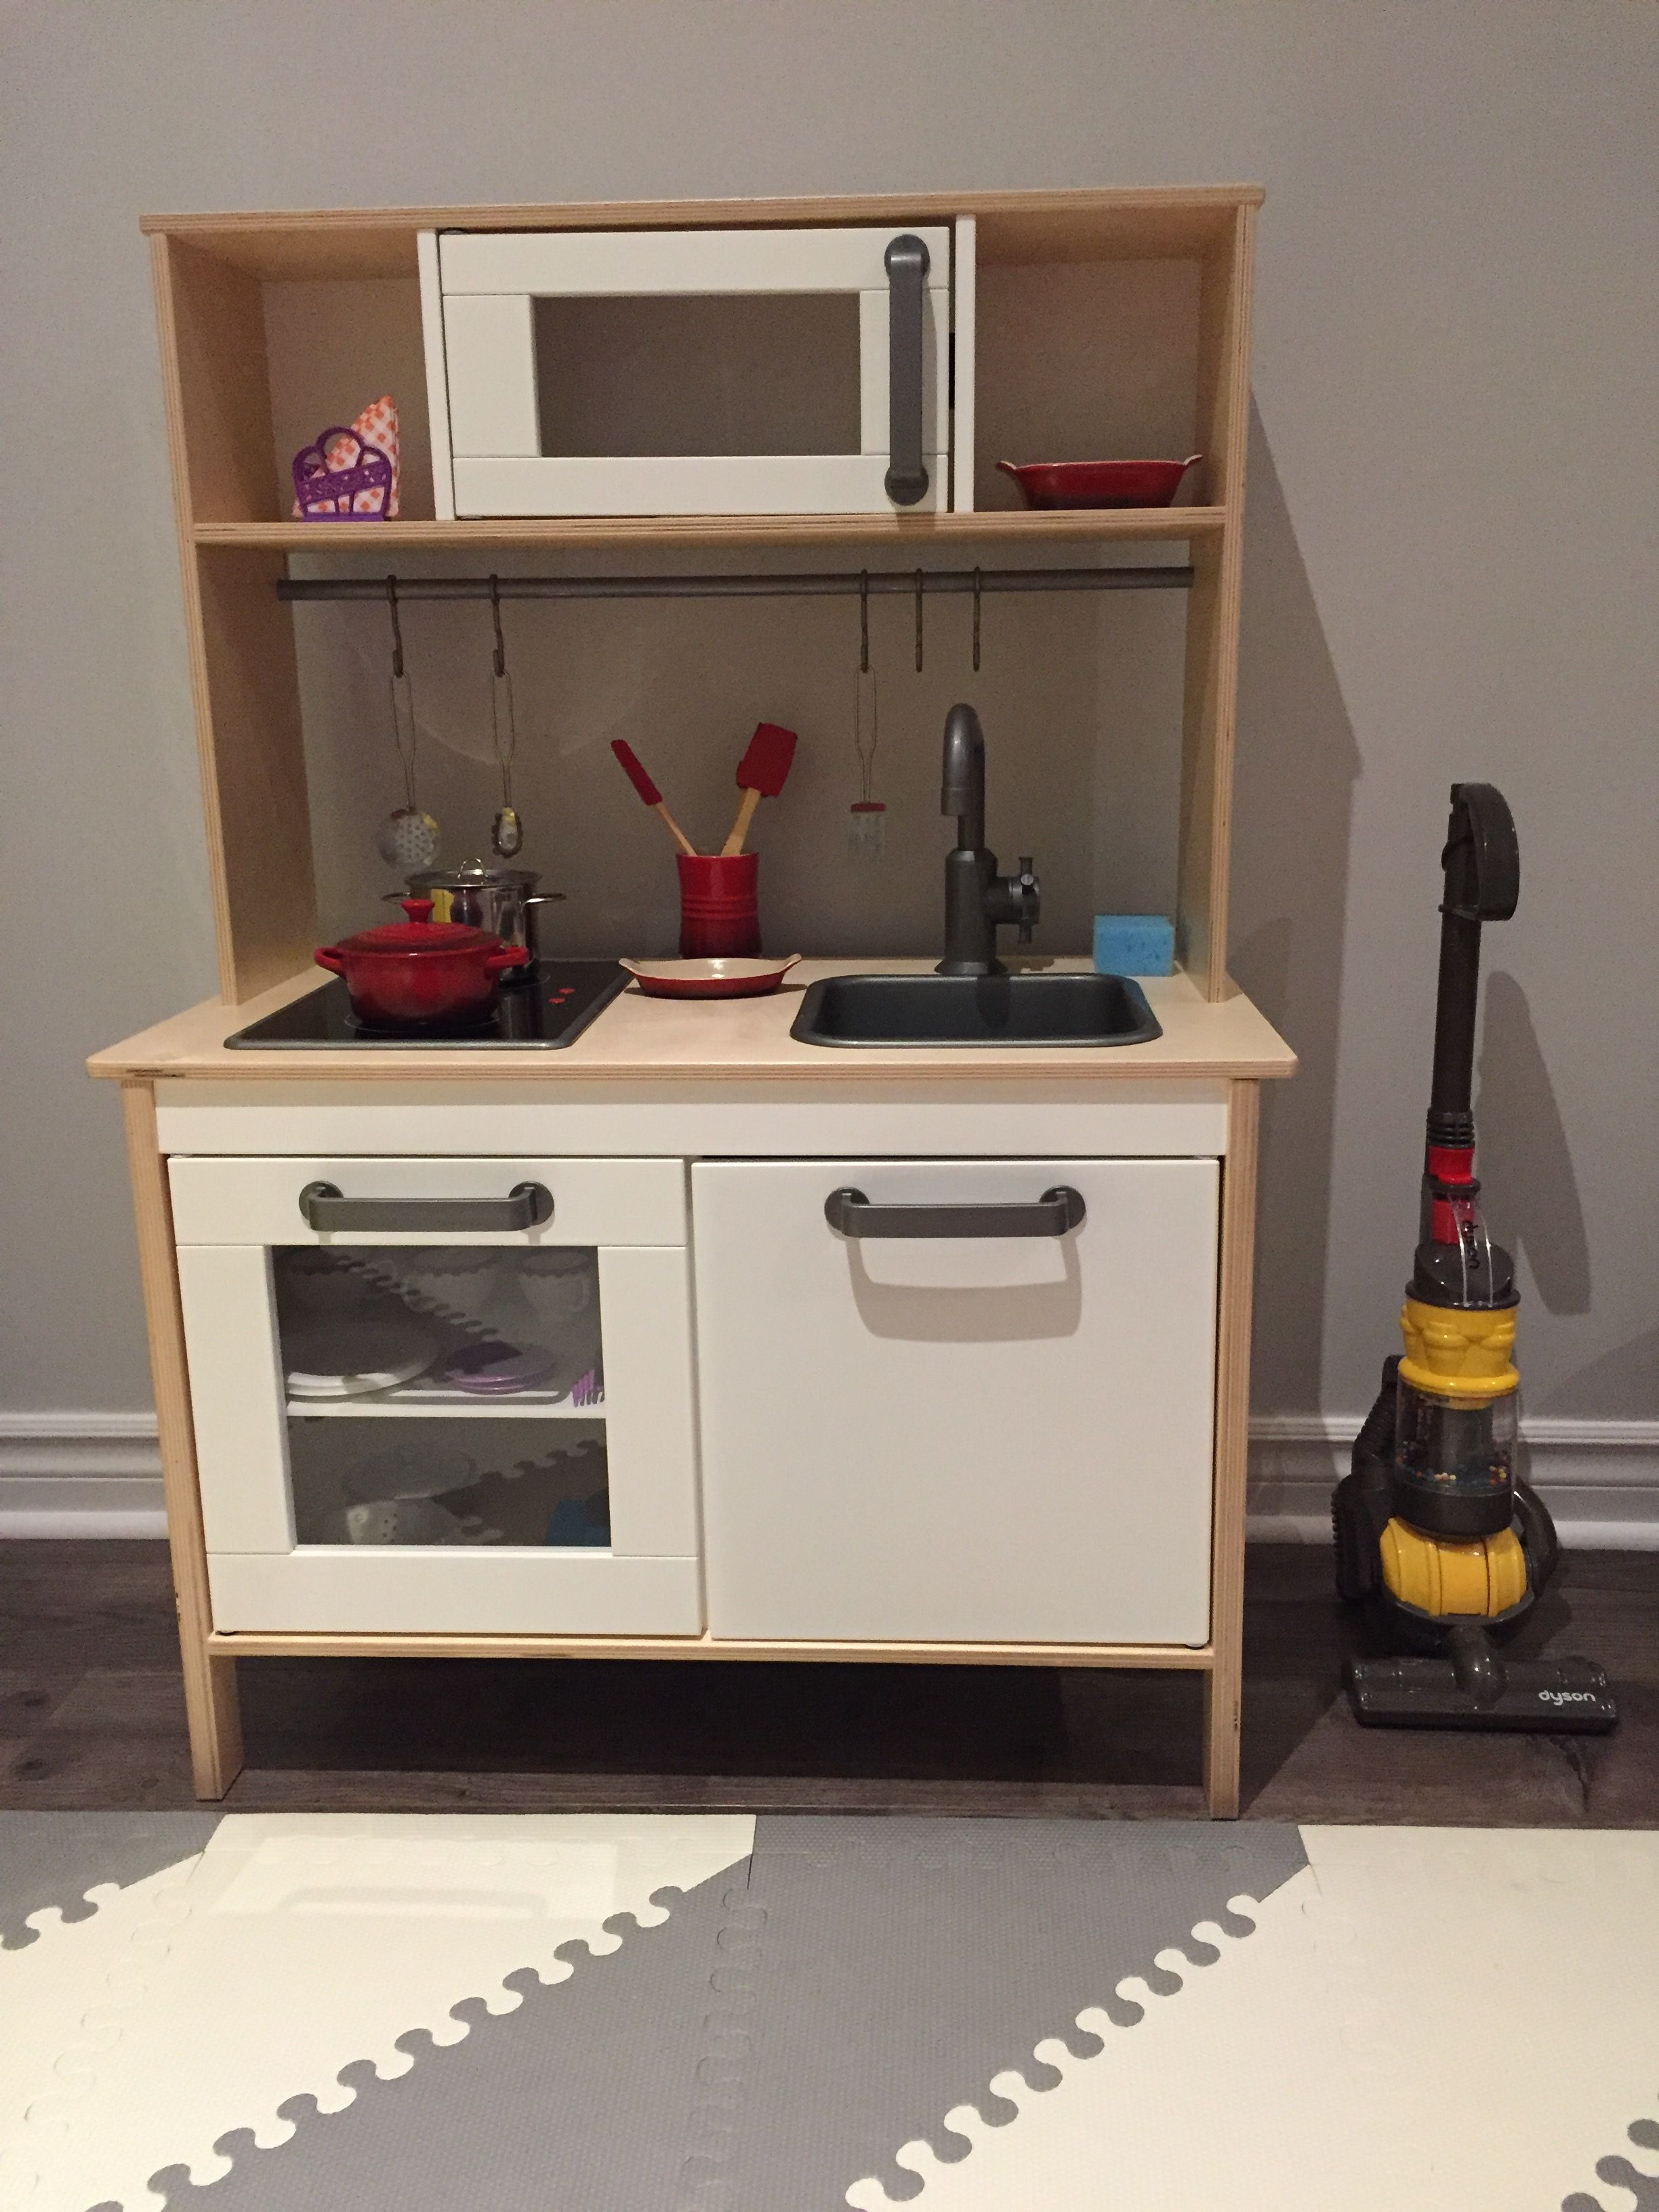 Kids ikea kitchen pottery barn kids creuset accessories and toy dyson vacuum